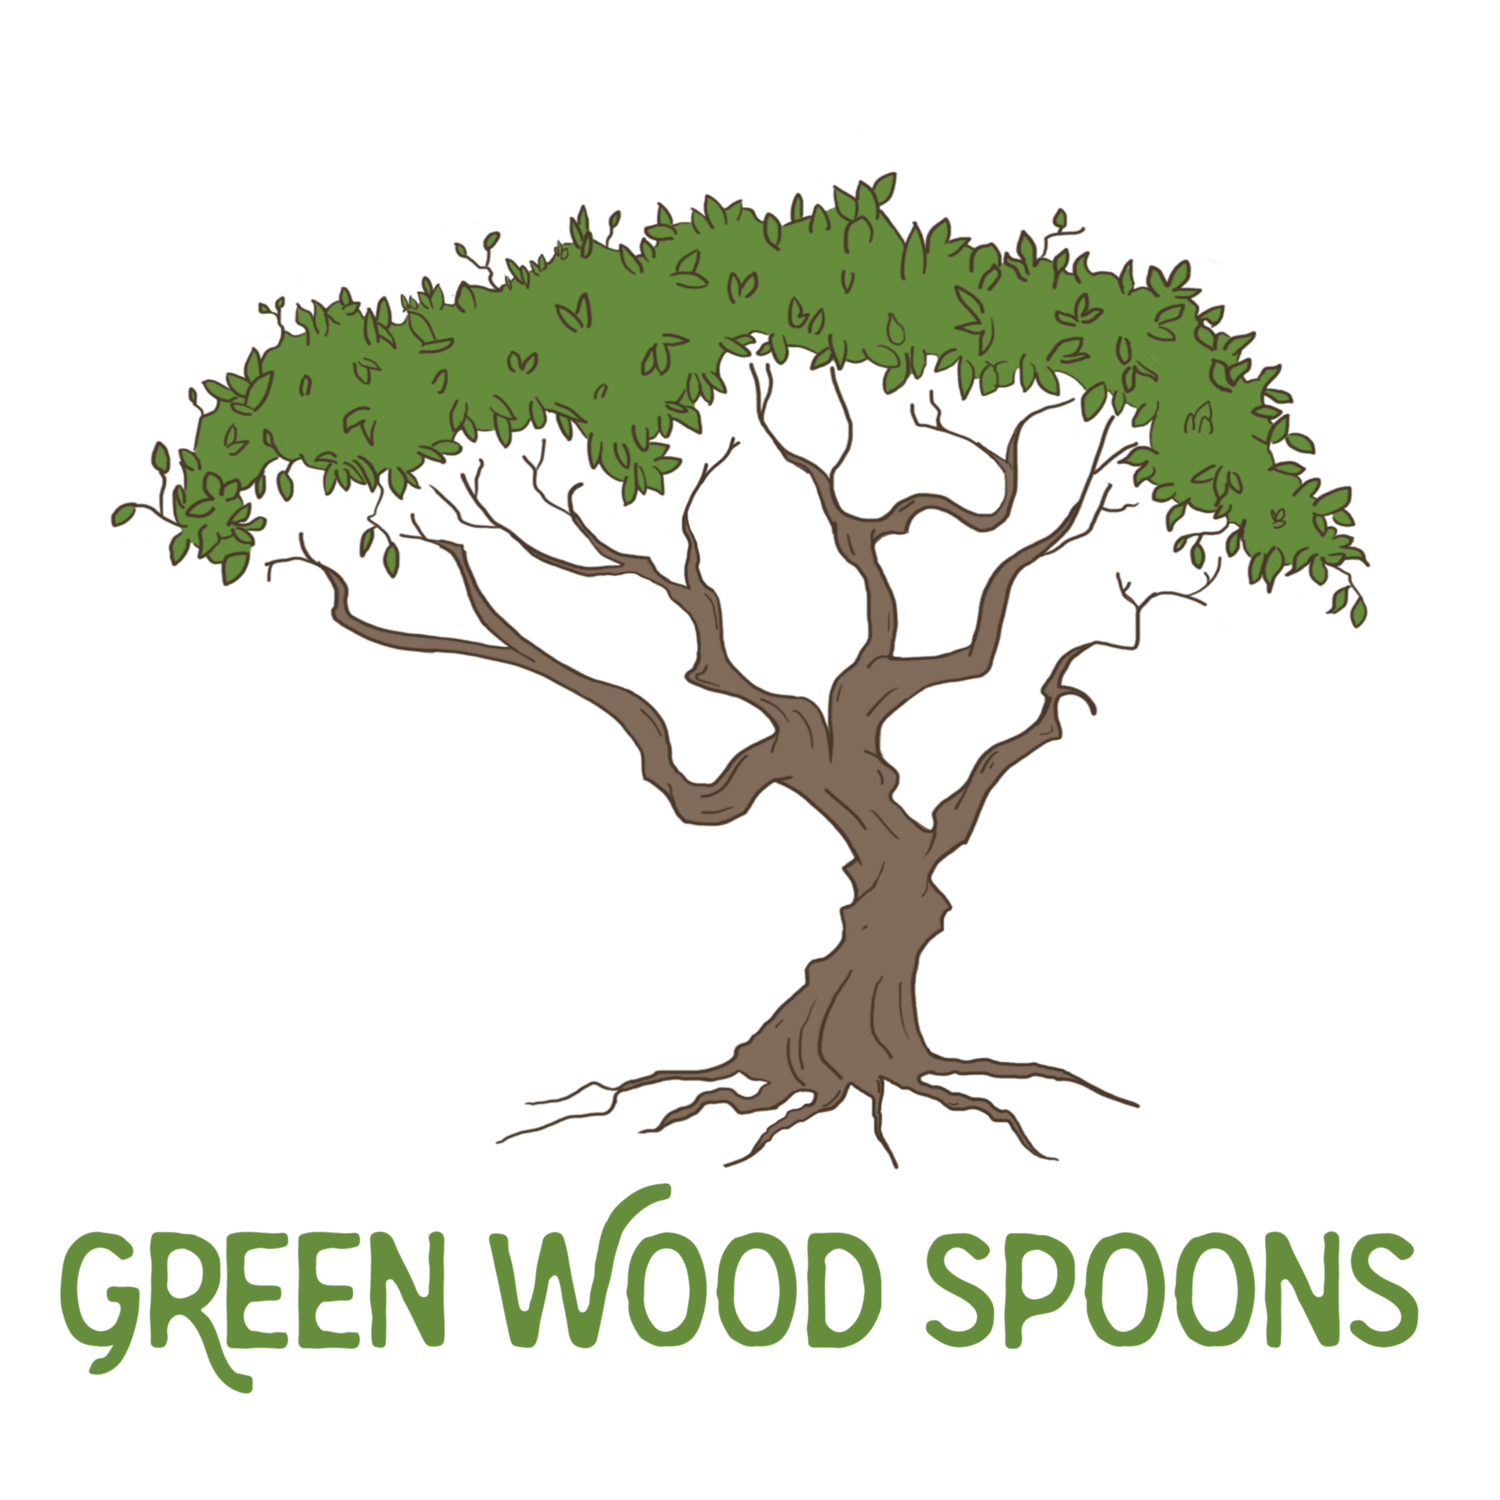 Green Wood Spoons